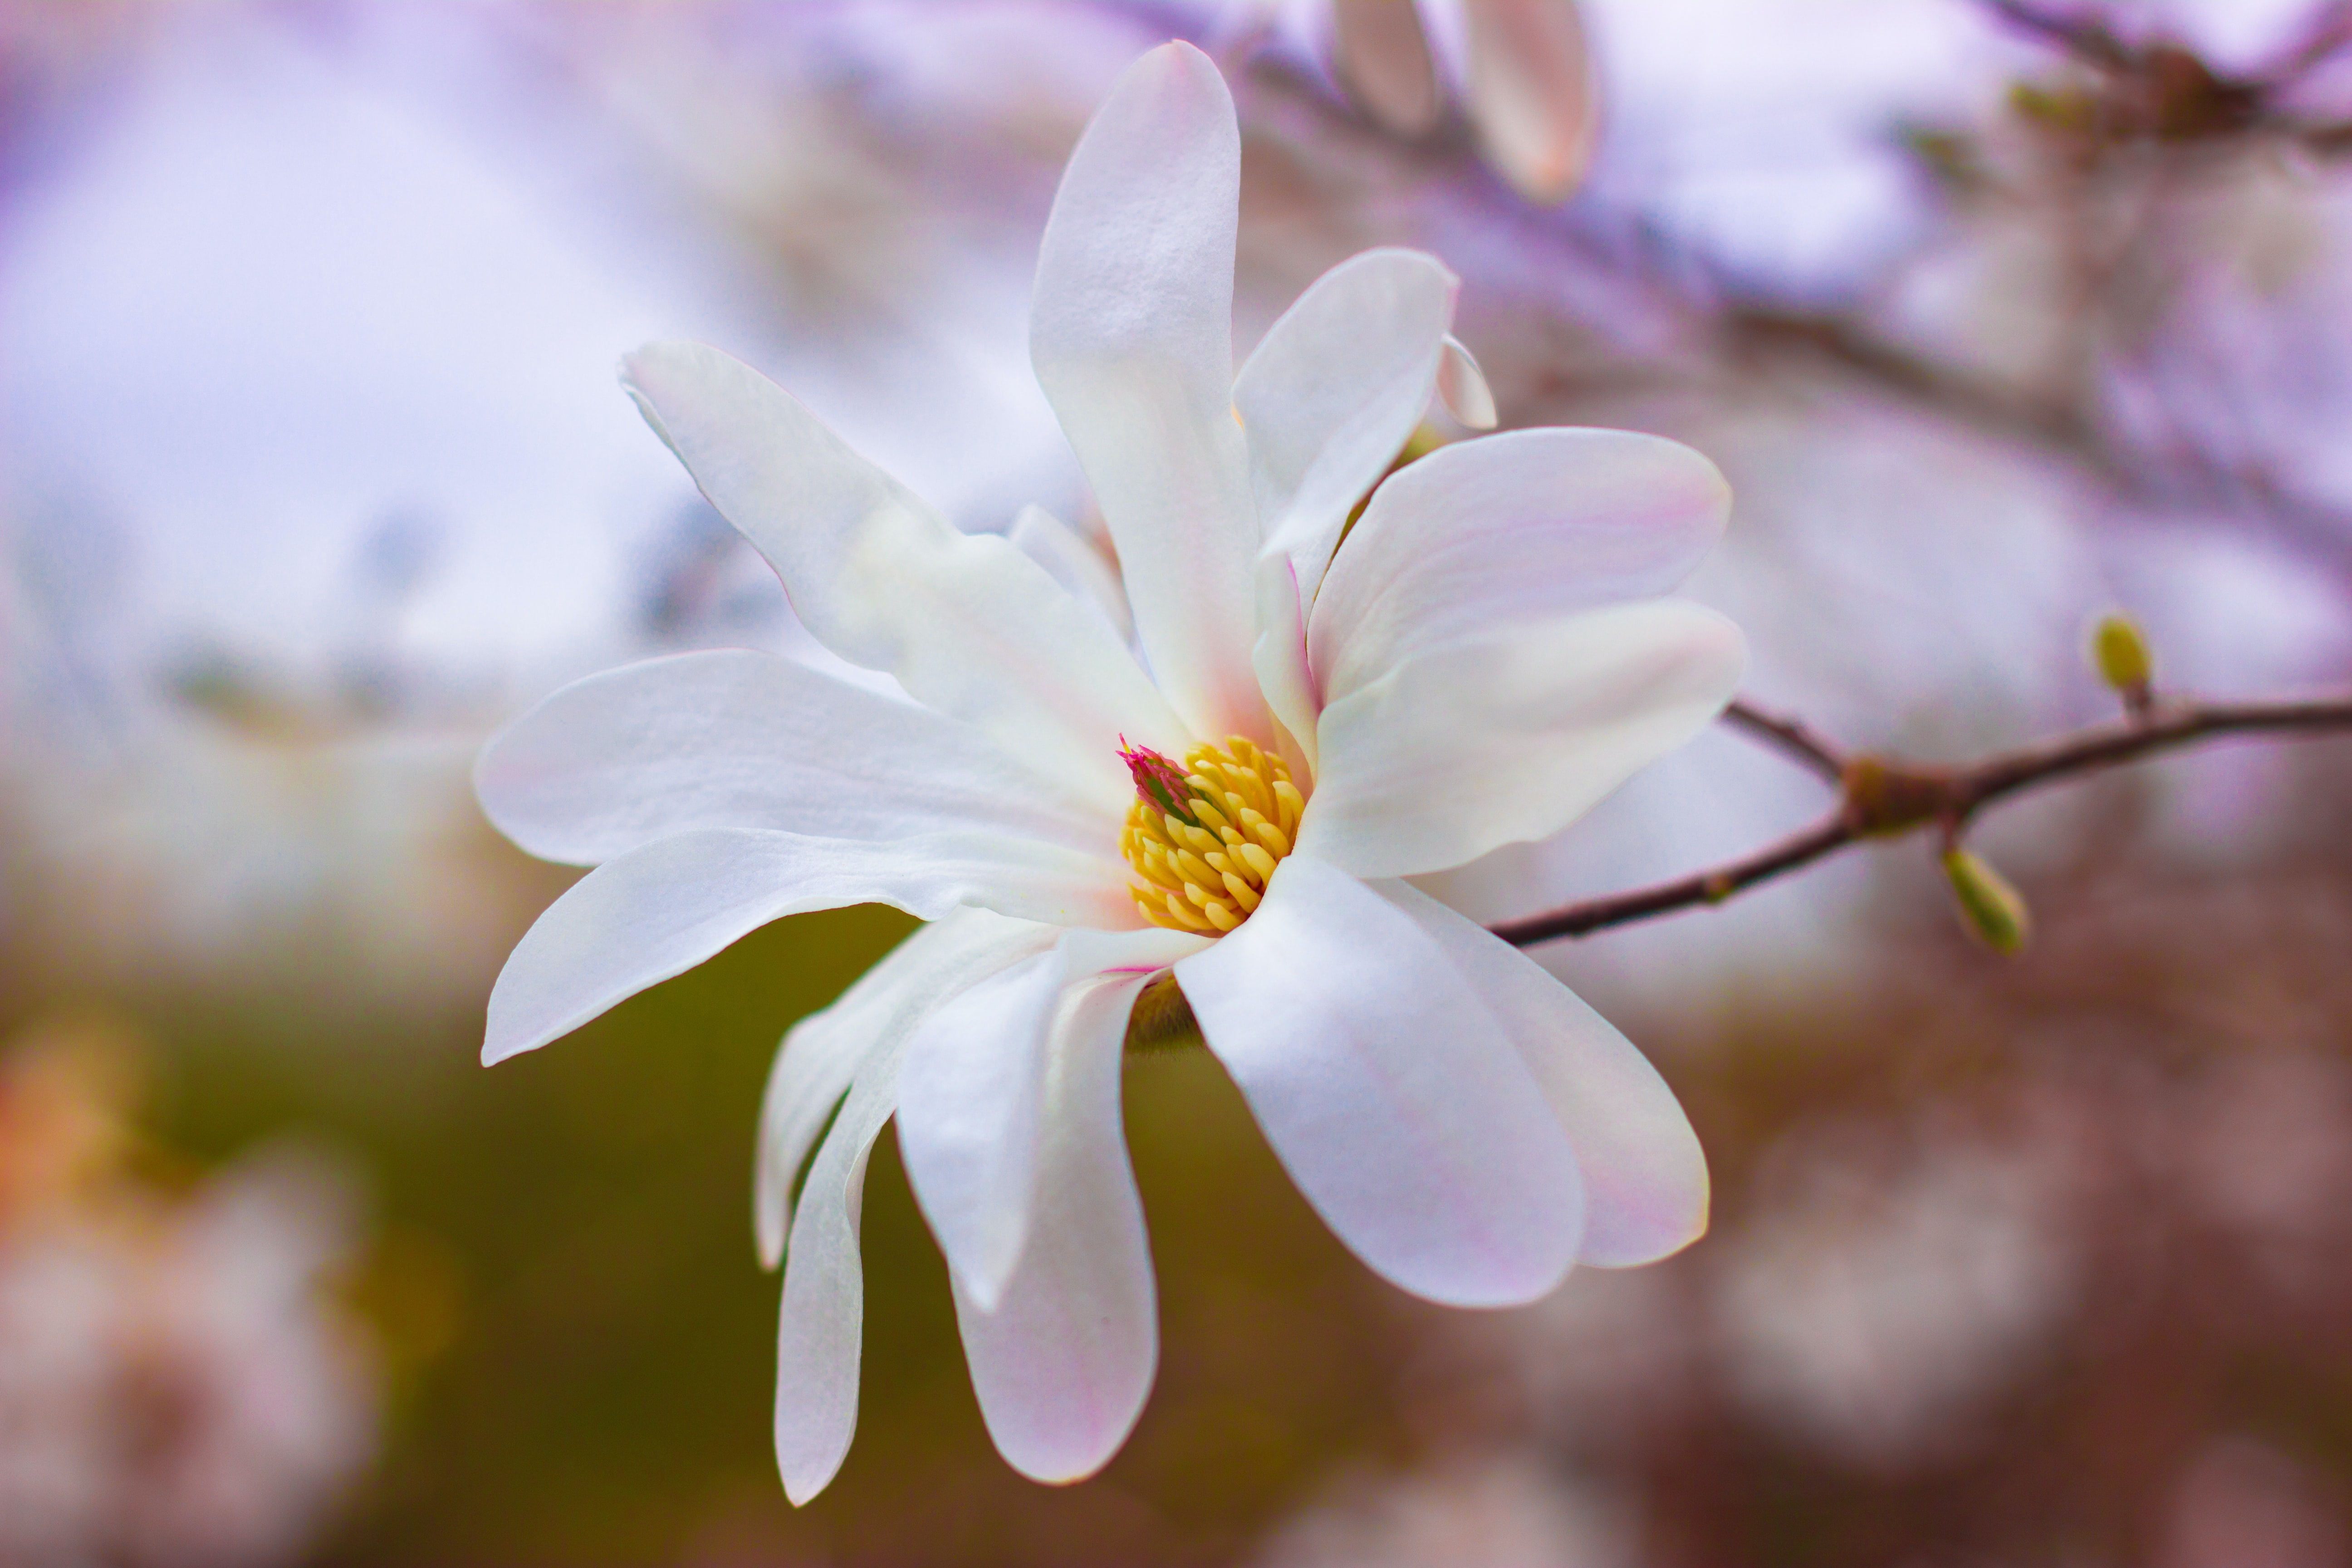 focus photography of blossom flower